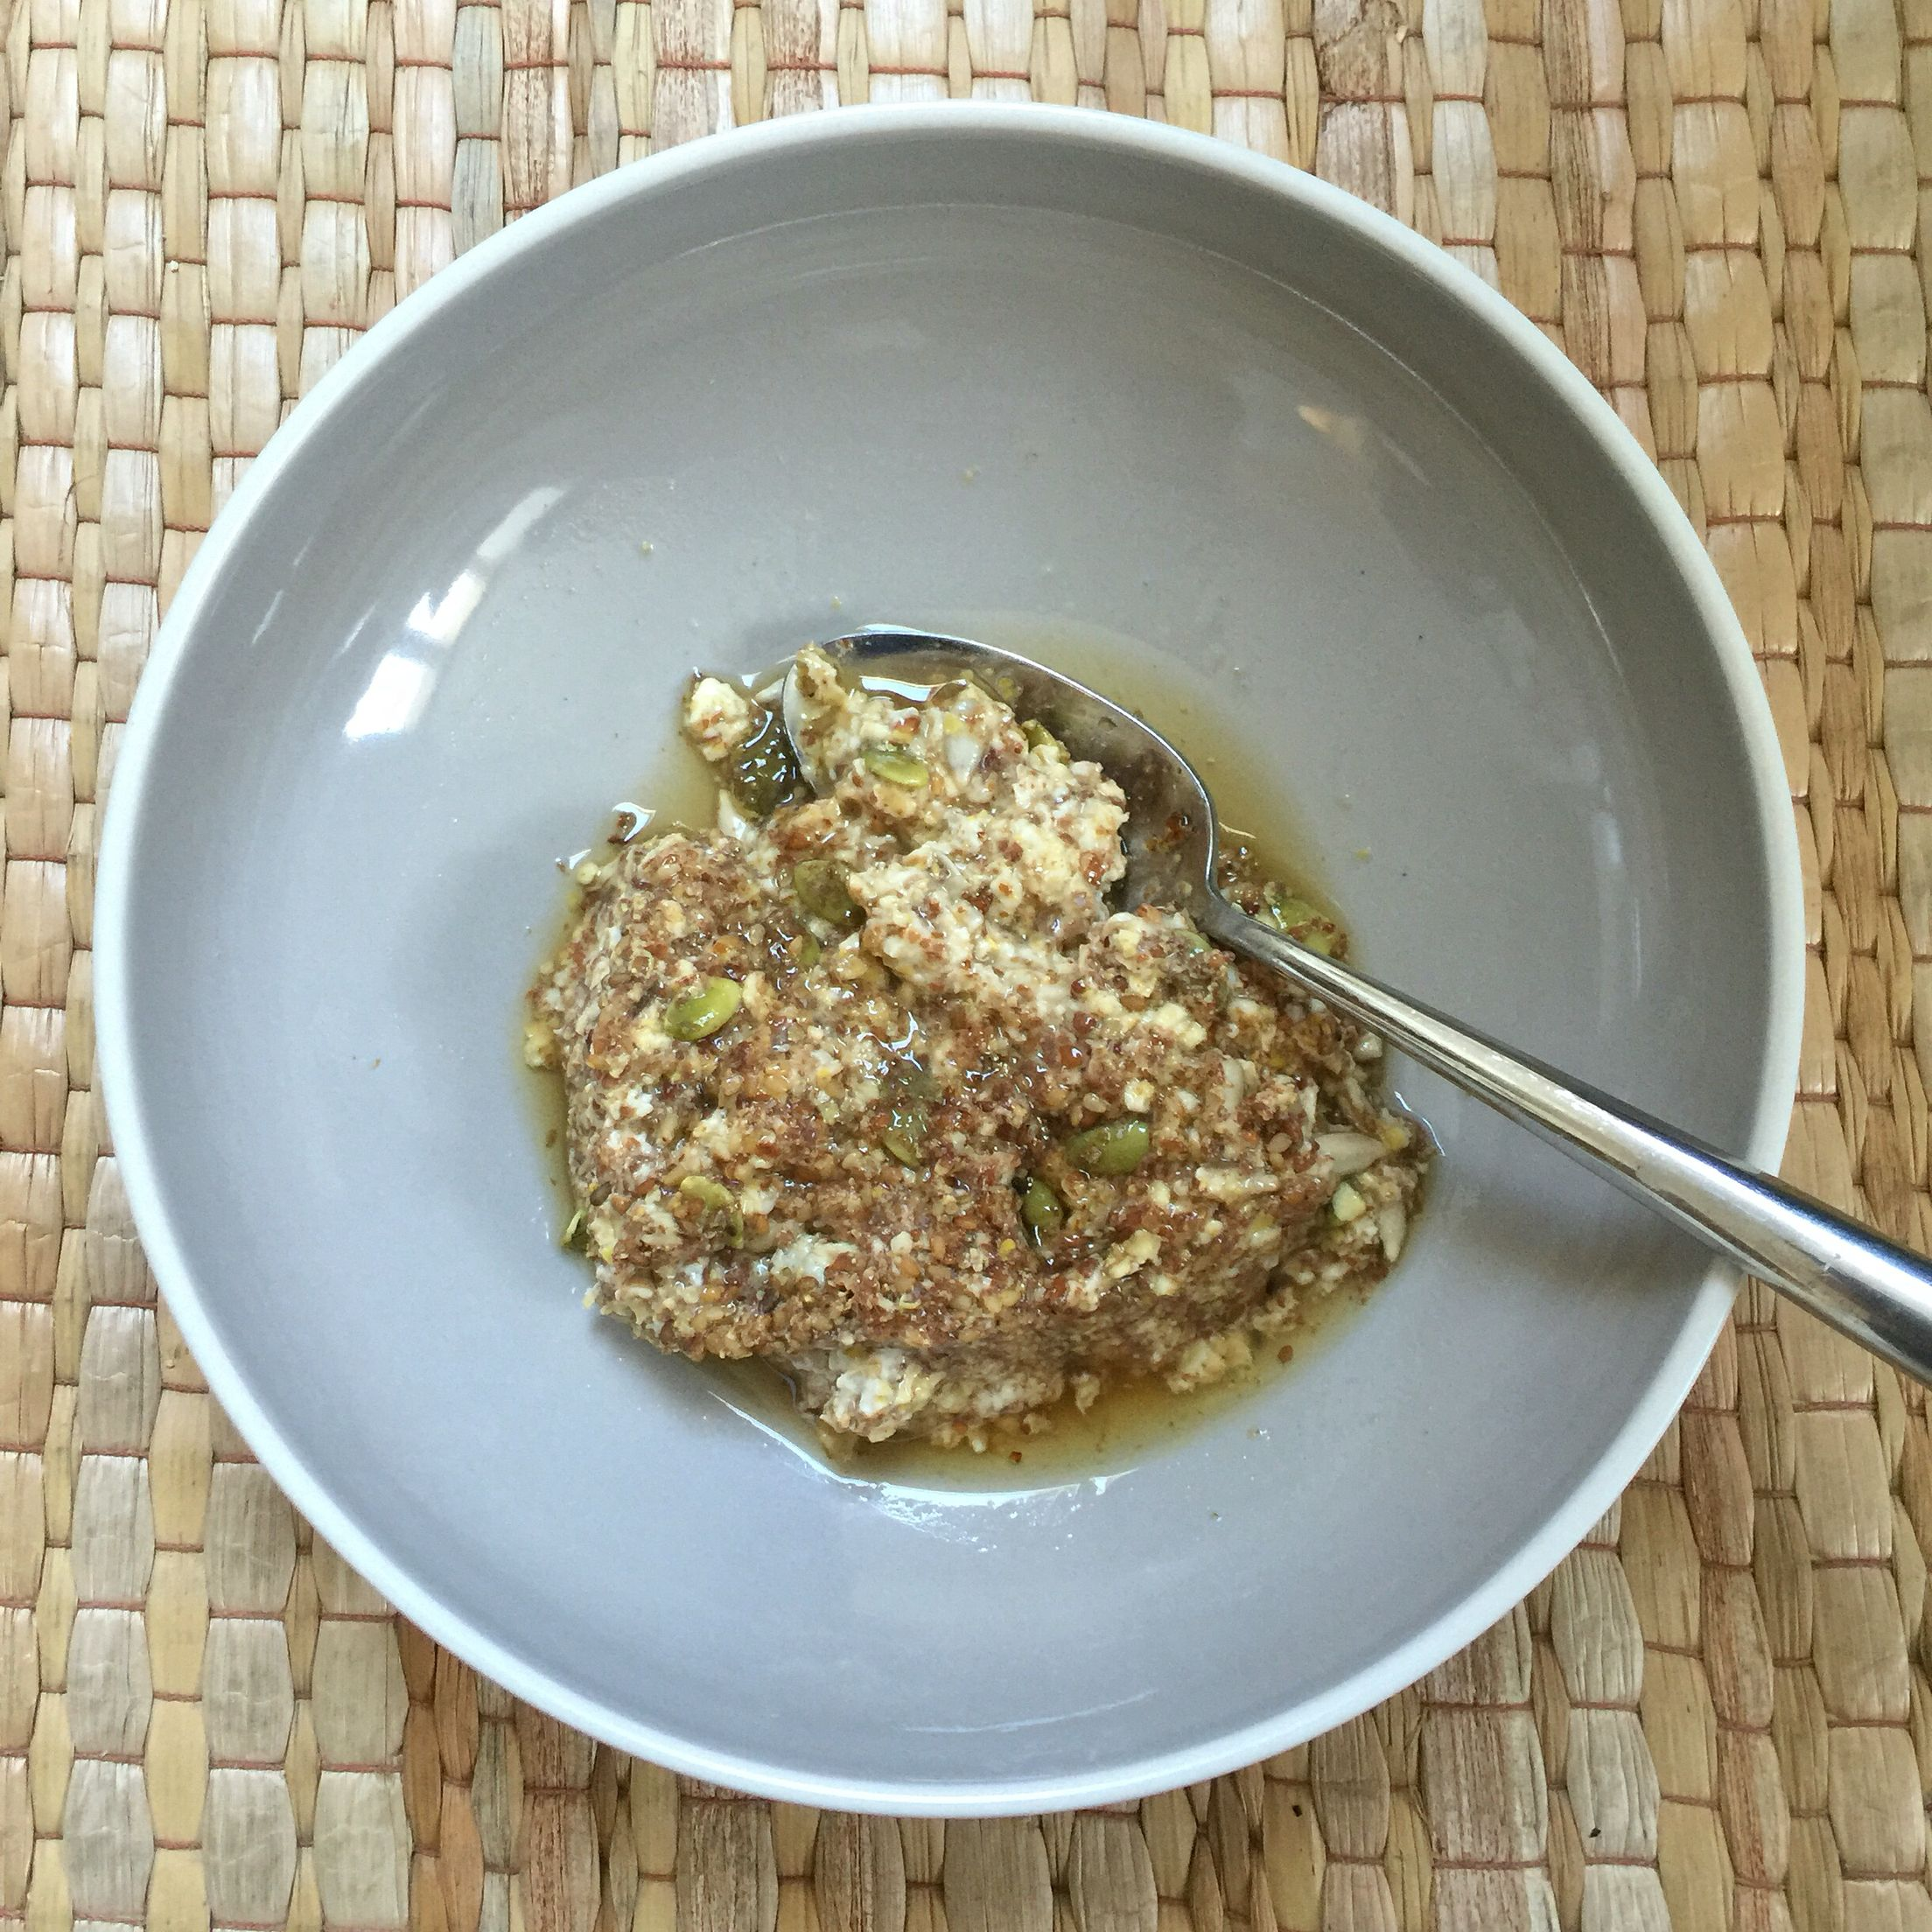 Soaked oats recipe exquisiteprivatechefblog all about soaked oats recipe exquisiteprivatechefblog forumfinder Image collections